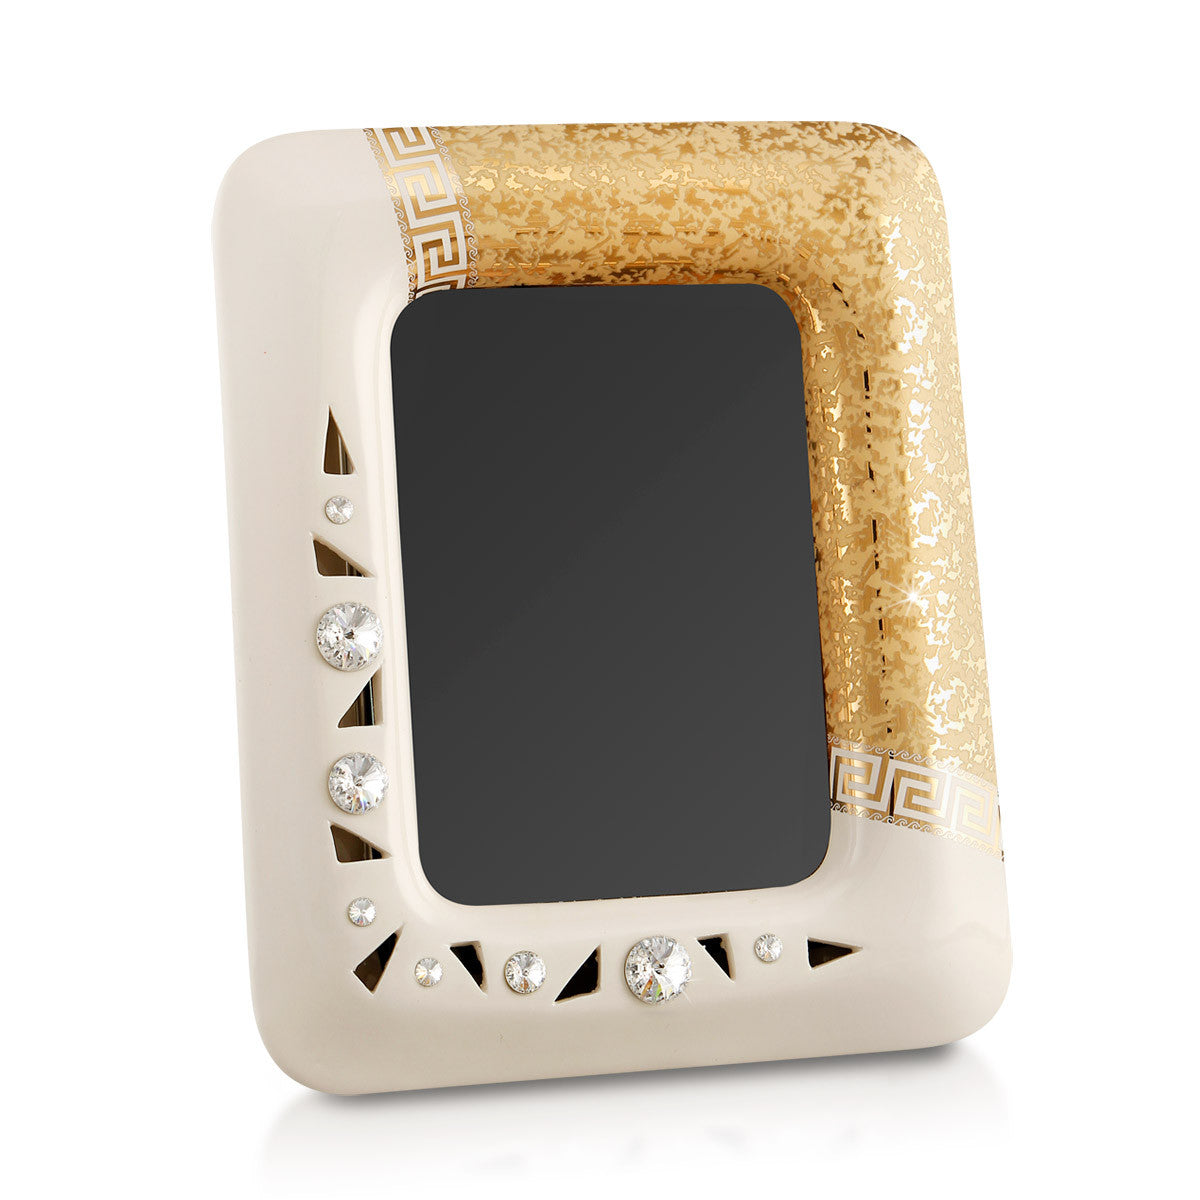 Rectangle ceramic picture frame with Swarovski crystal